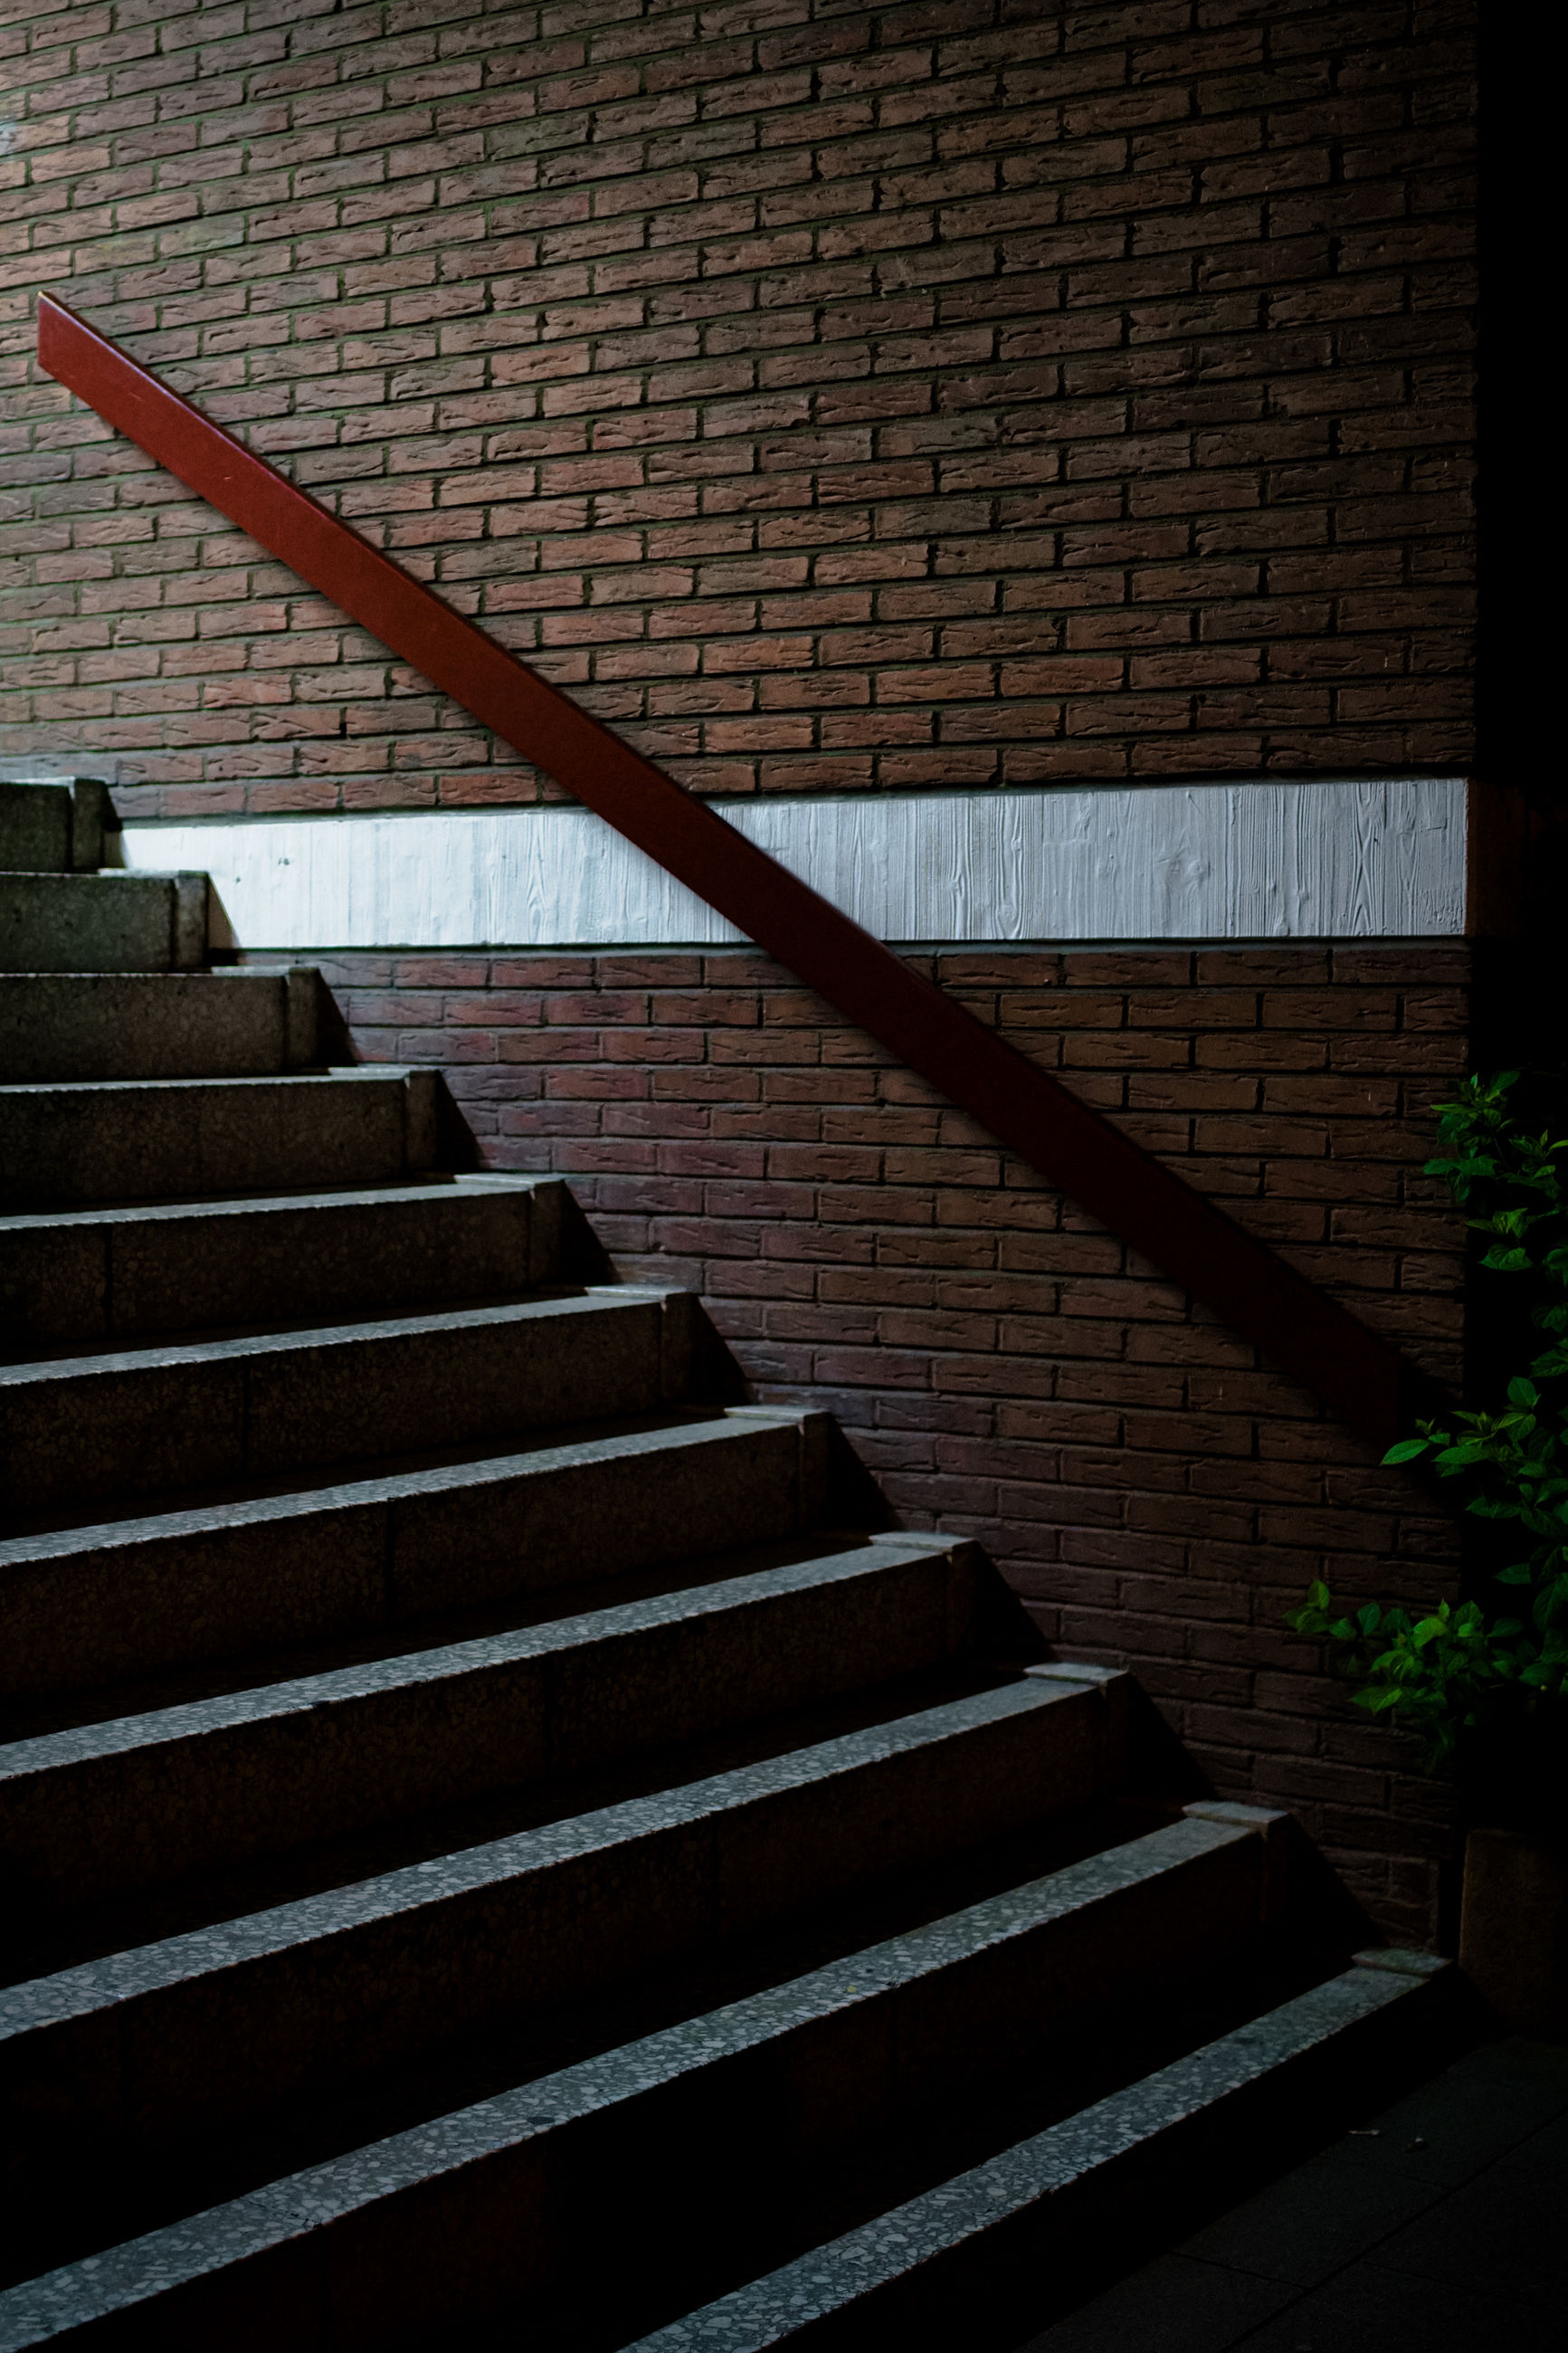 staircase, steps and staircases, architecture, stairs, built structure, no people, railing, wall, wood, light, line, darkness, low angle view, pattern, building exterior, wall - building feature, day, nature, outdoors, brick